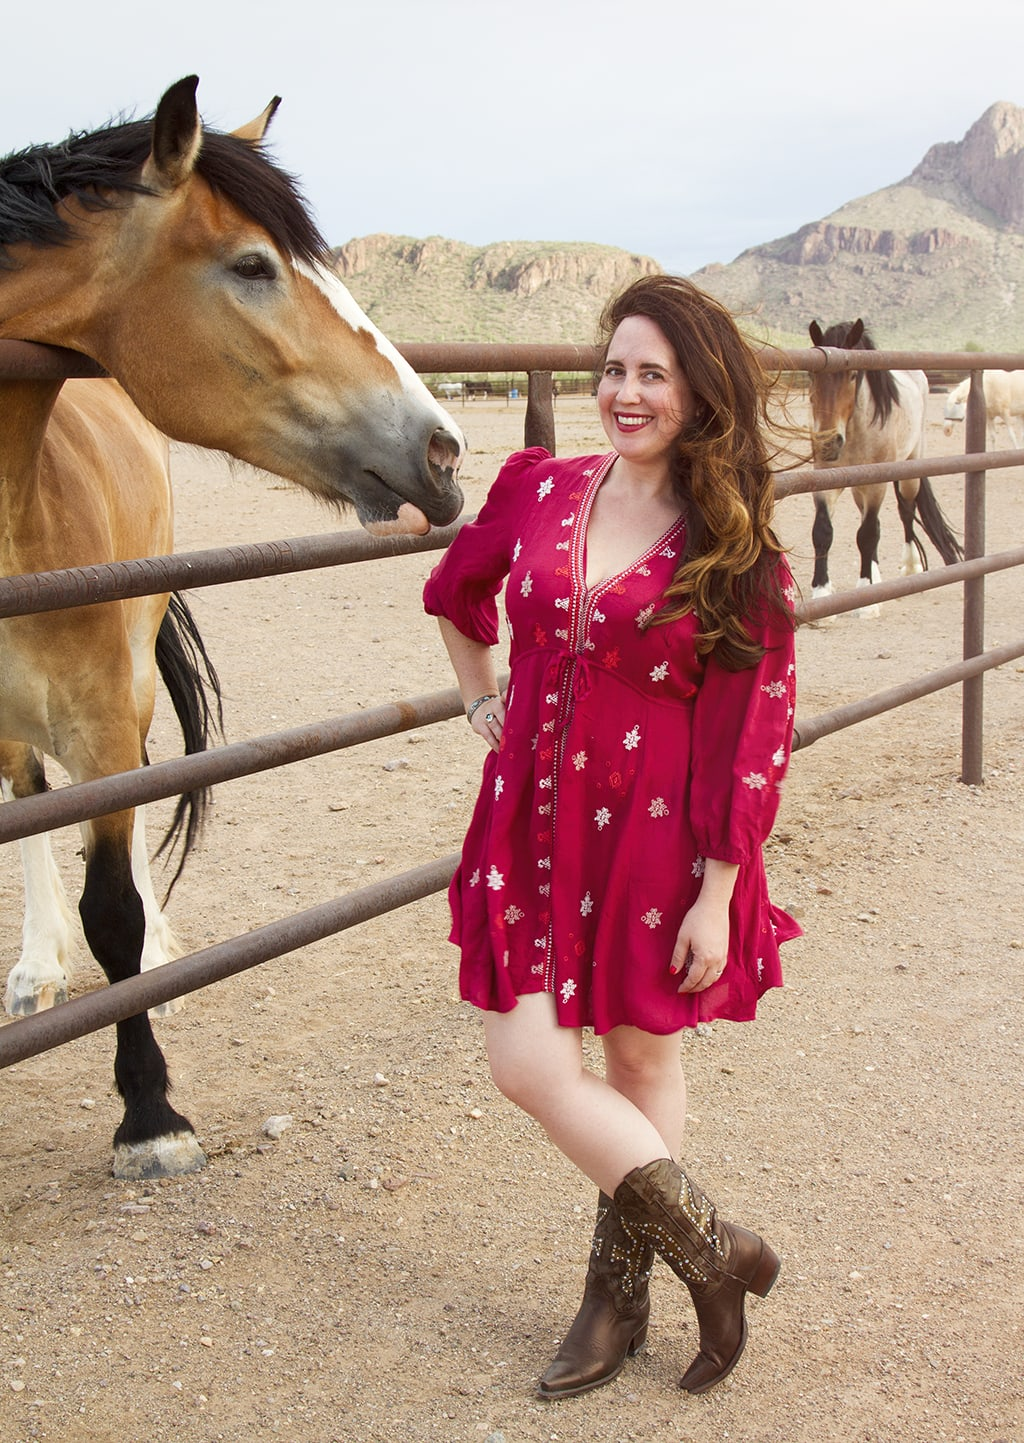 Red Dress Horse 2